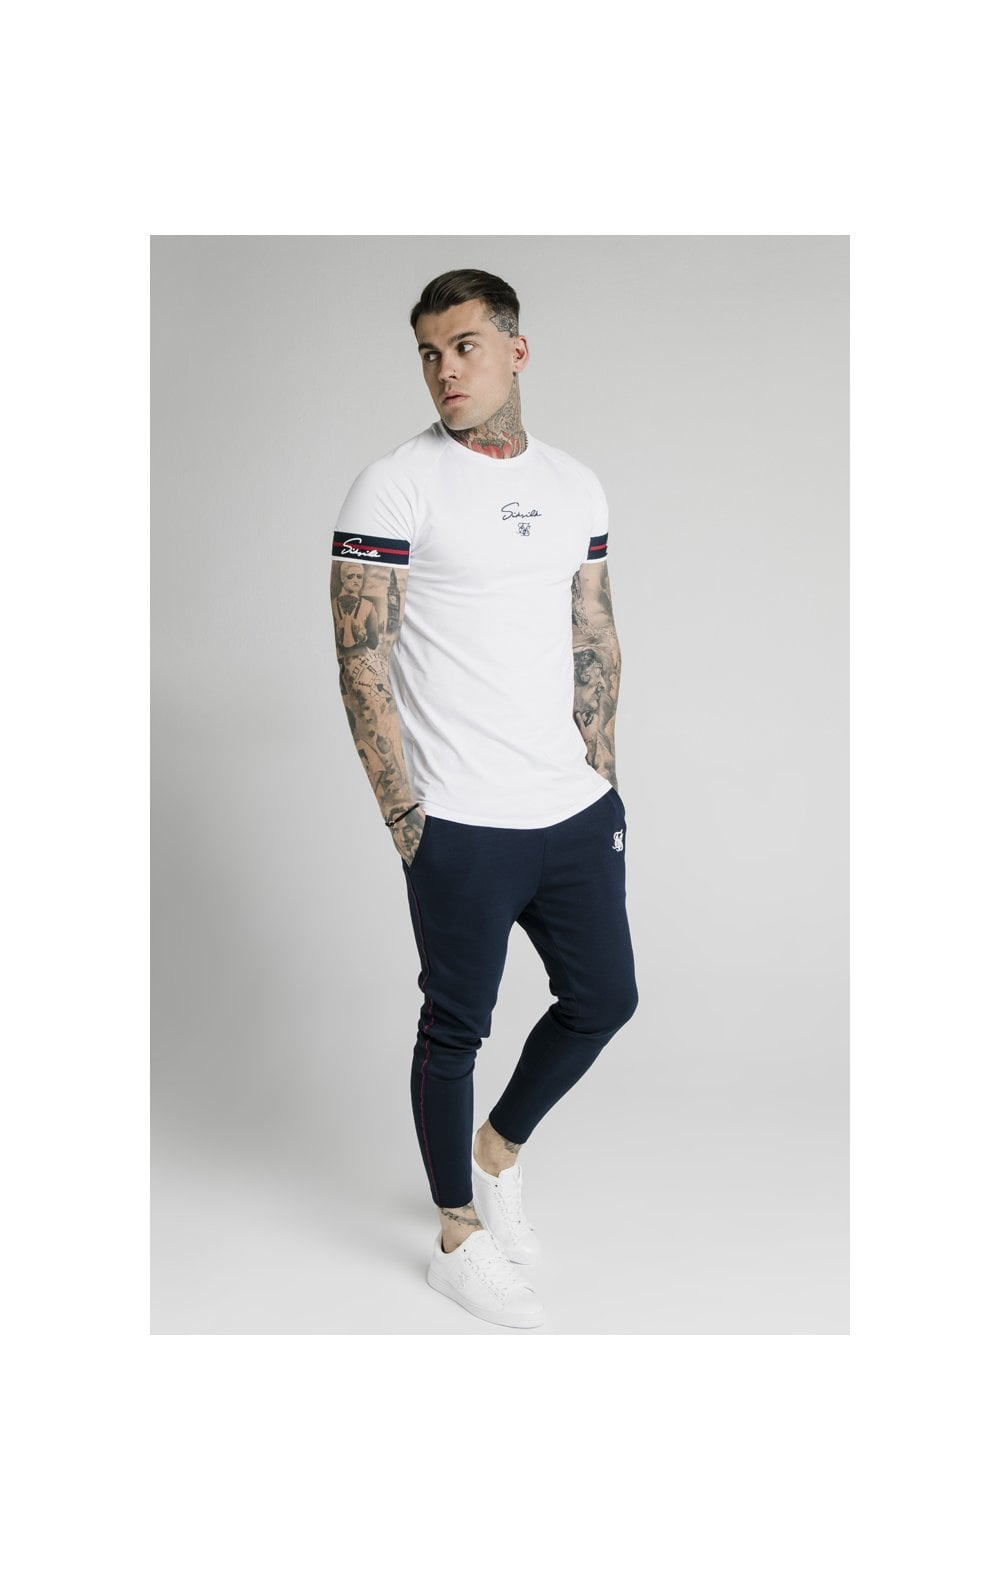 Load image into Gallery viewer, SikSilk Raglan Tech Tee Exposed Tape - White (4)